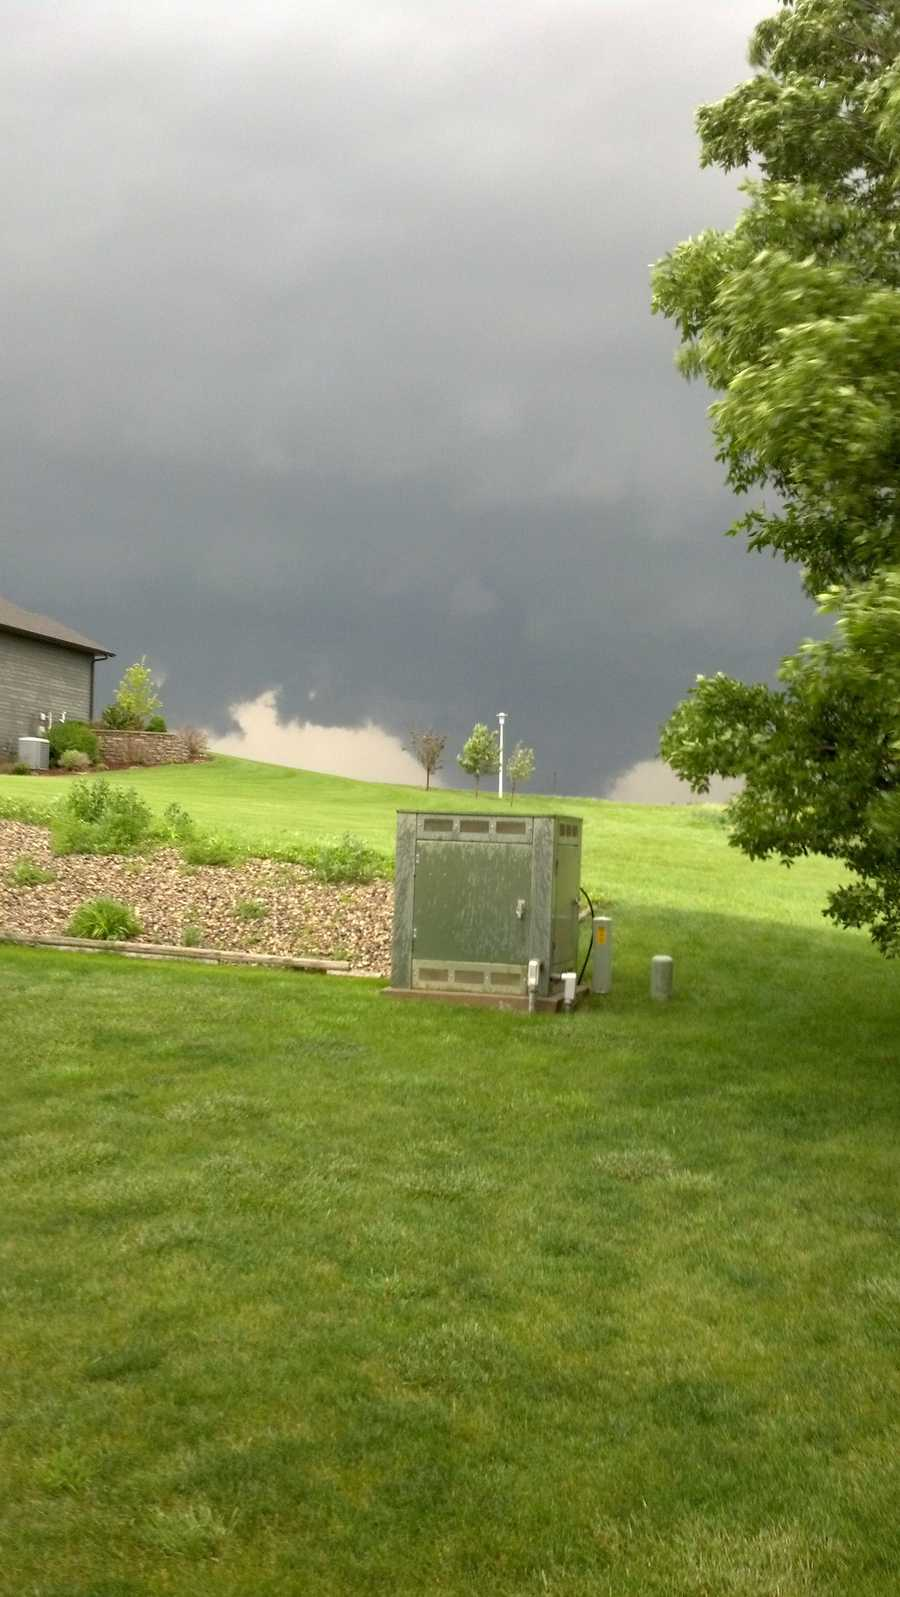 Tornado from my backyard in Wisner, NE